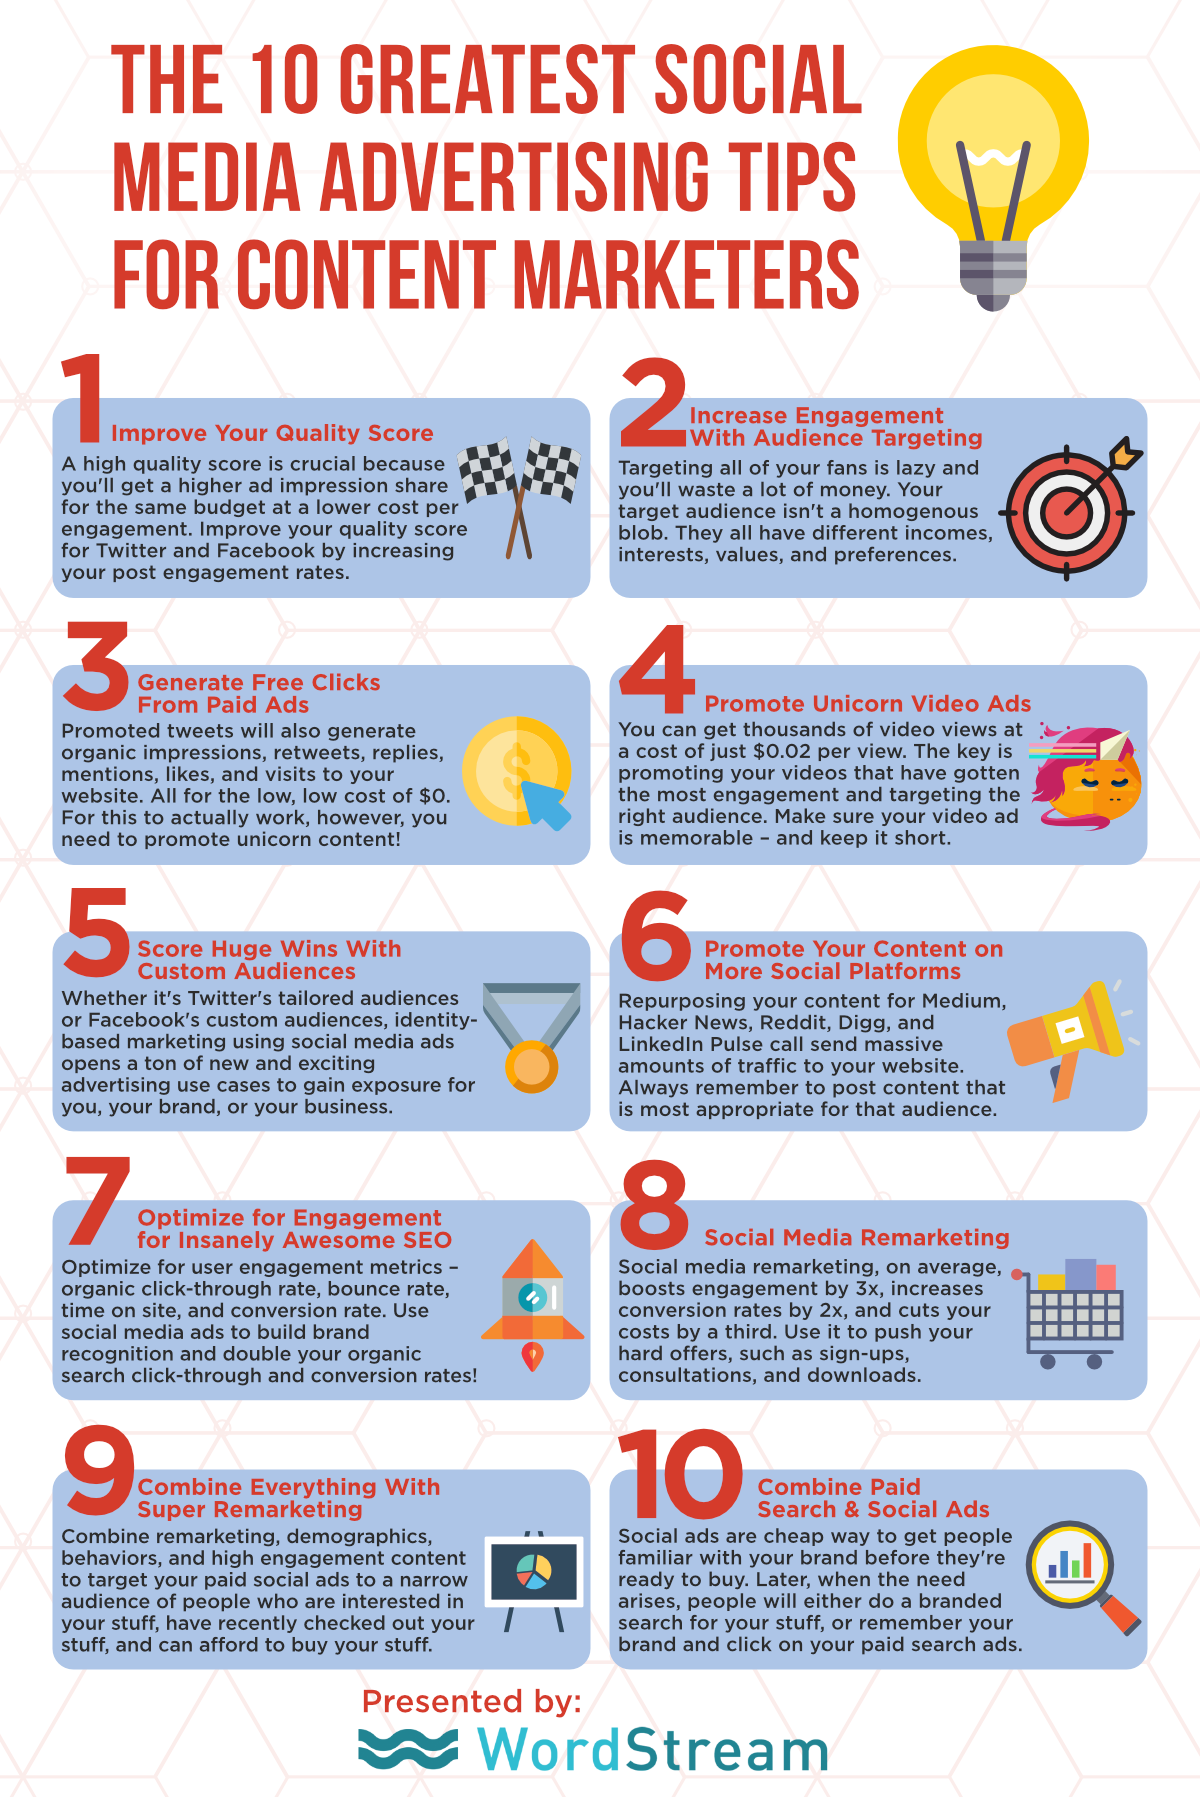 Top 10 social media advertising tips infographic